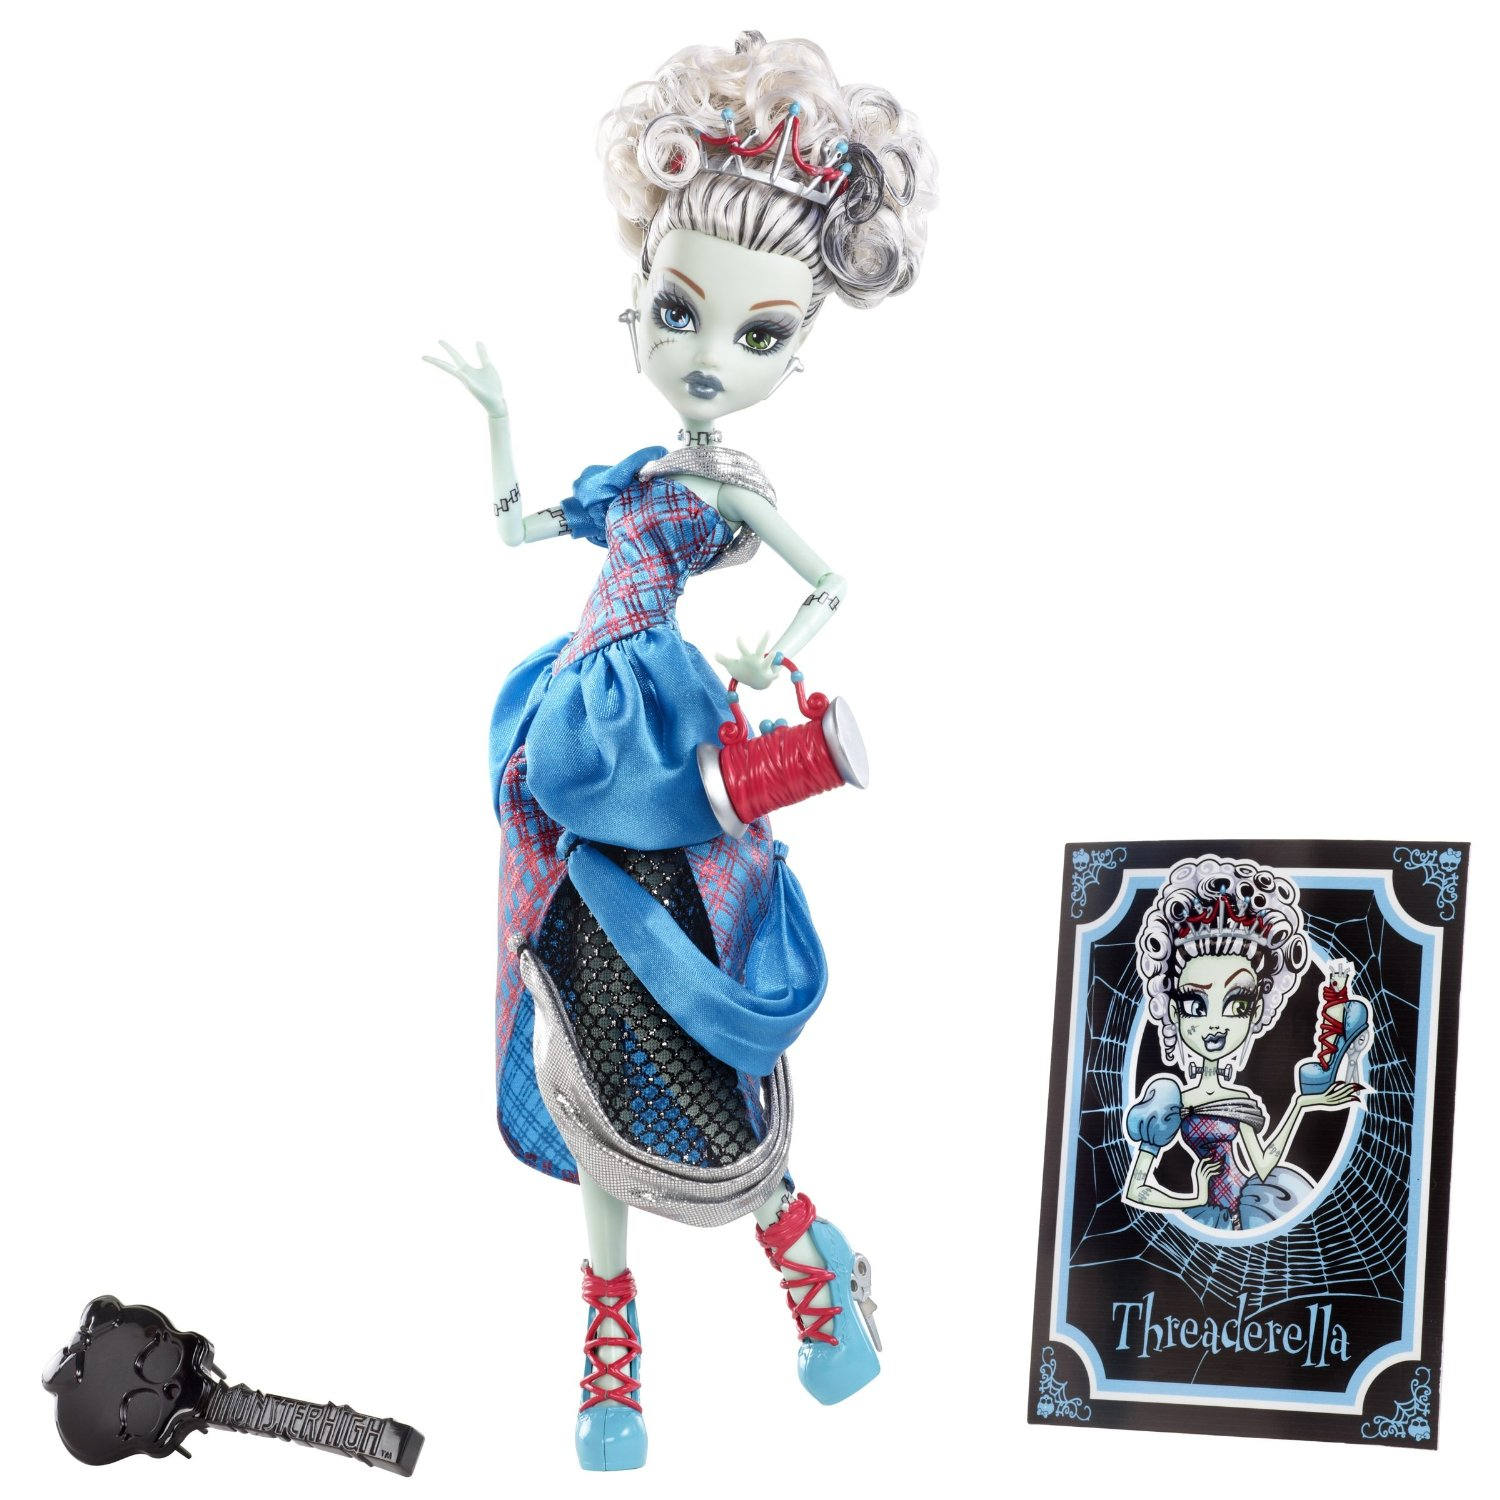 http://www.chudesarik.ru/images/cms/data/monster_high/91zdk.jpg